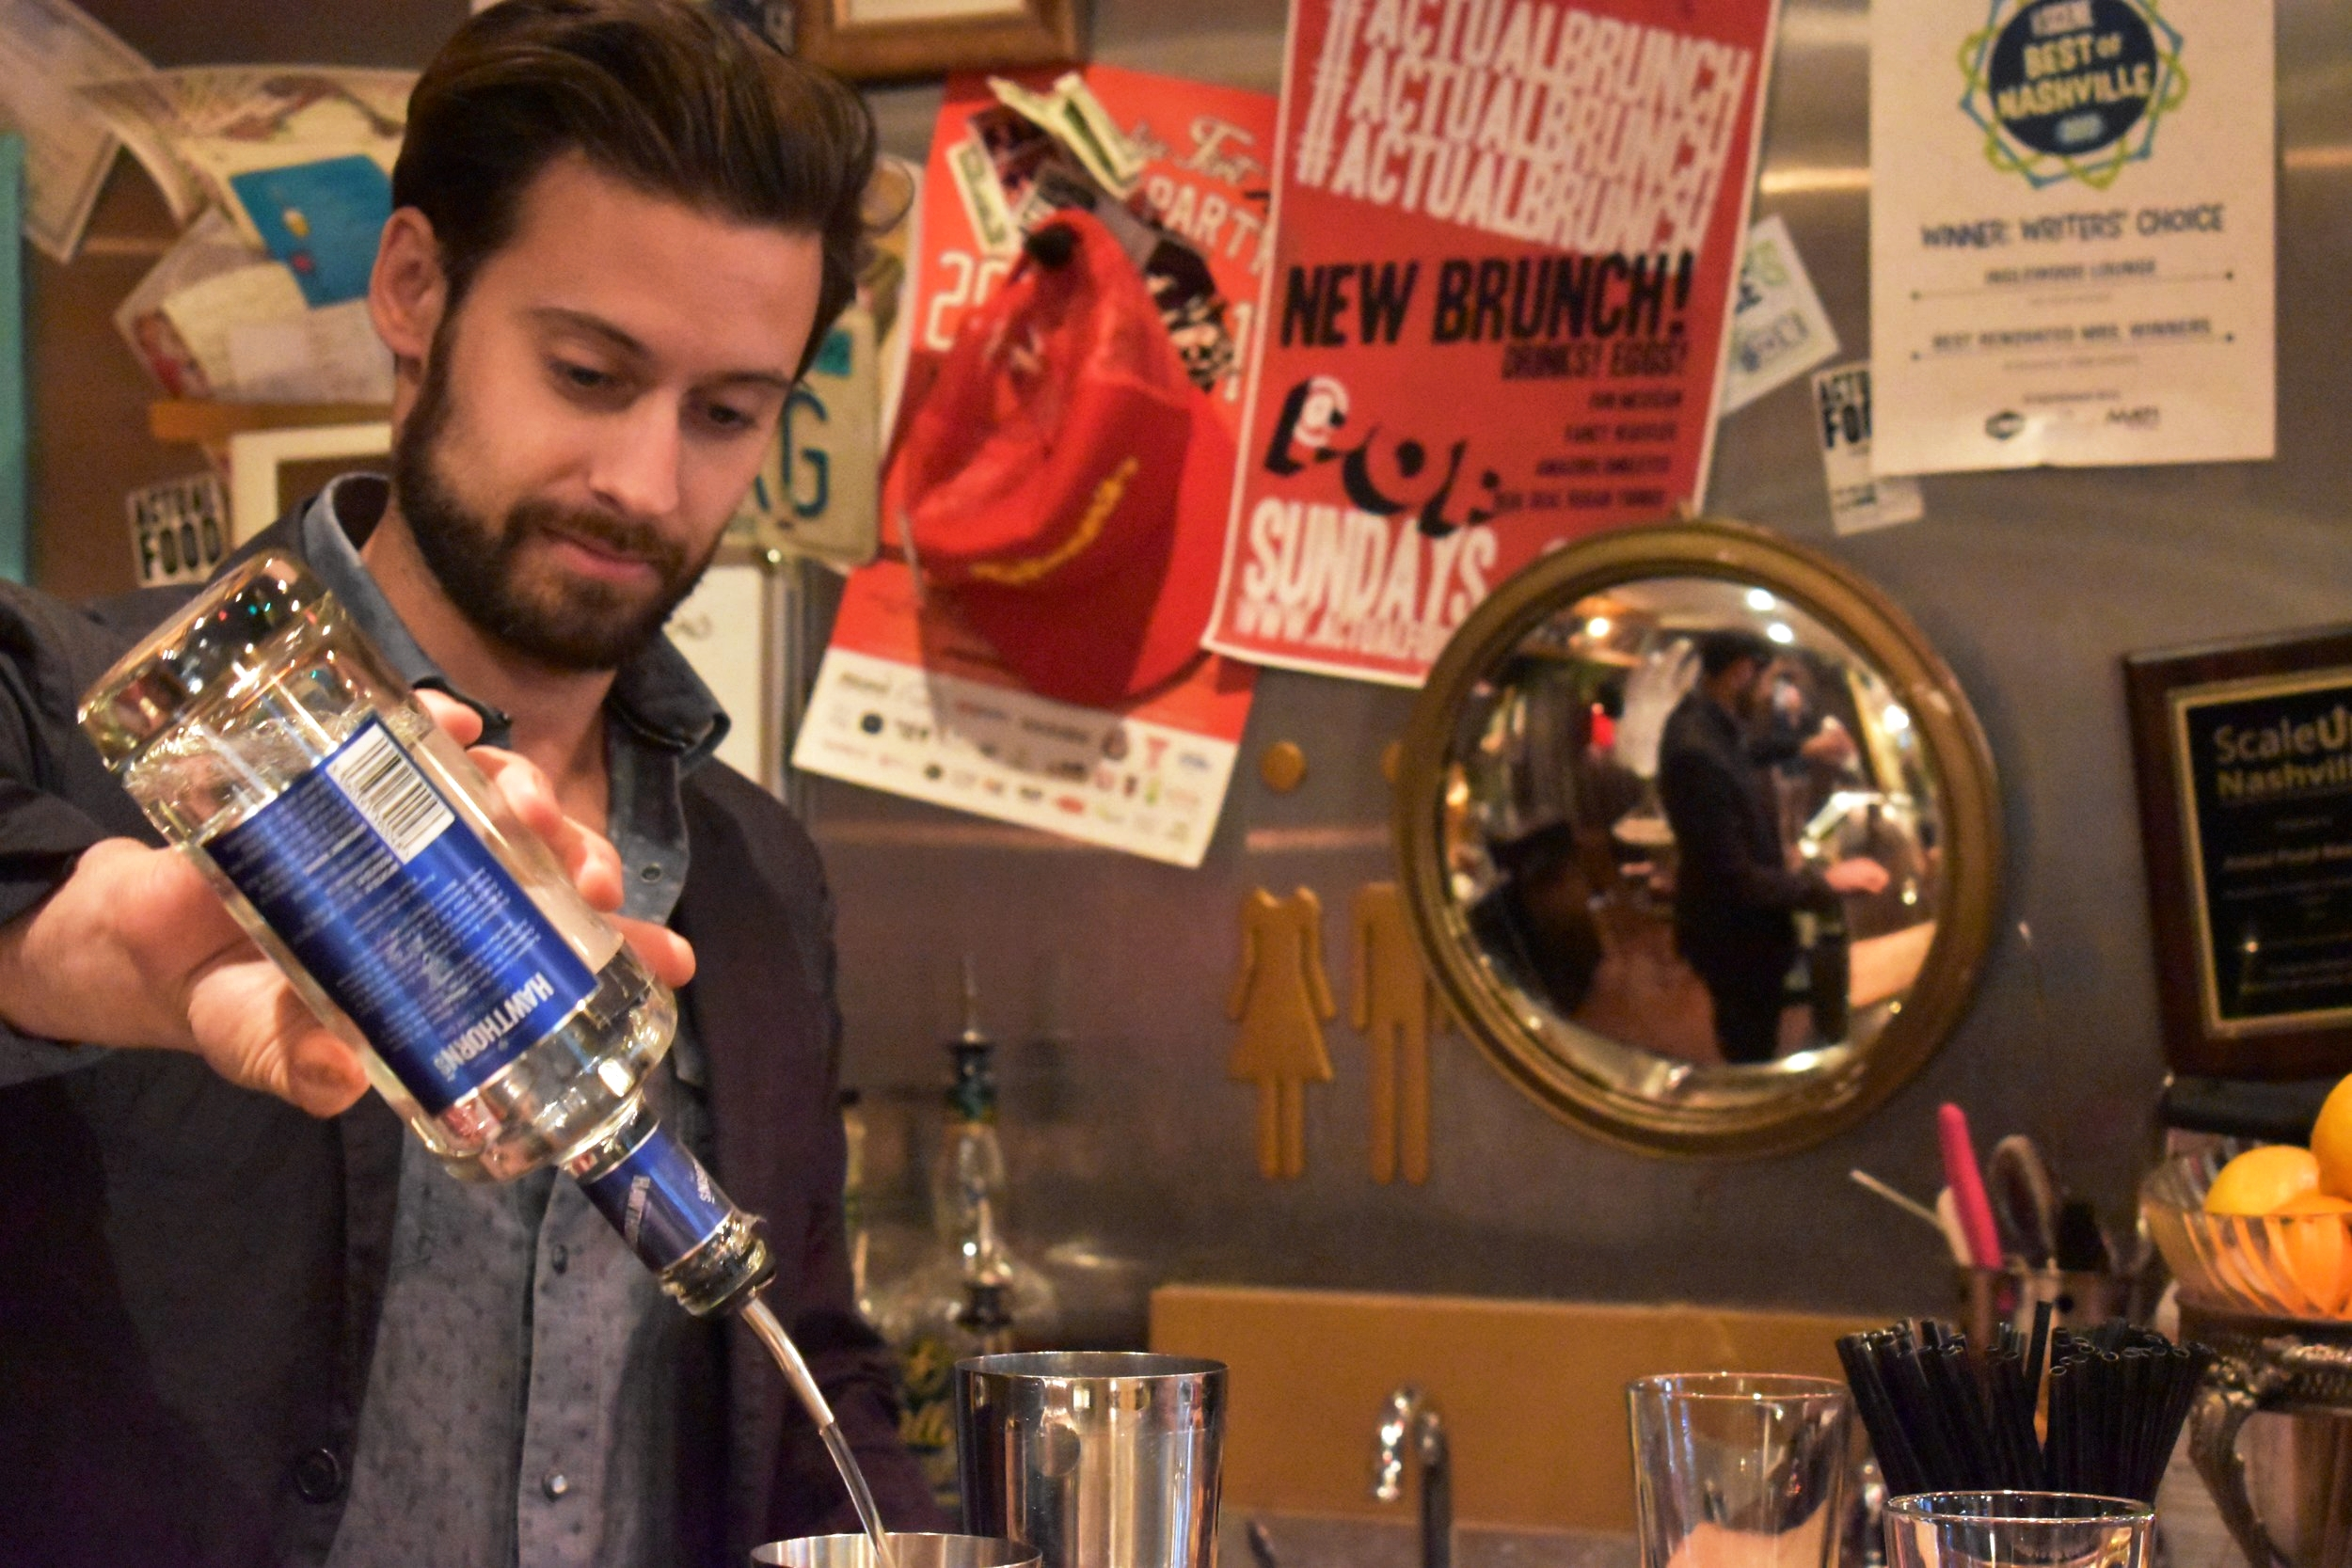 Owner Dan Forberg pours a drink behind the bar at Inglewood Lounge.